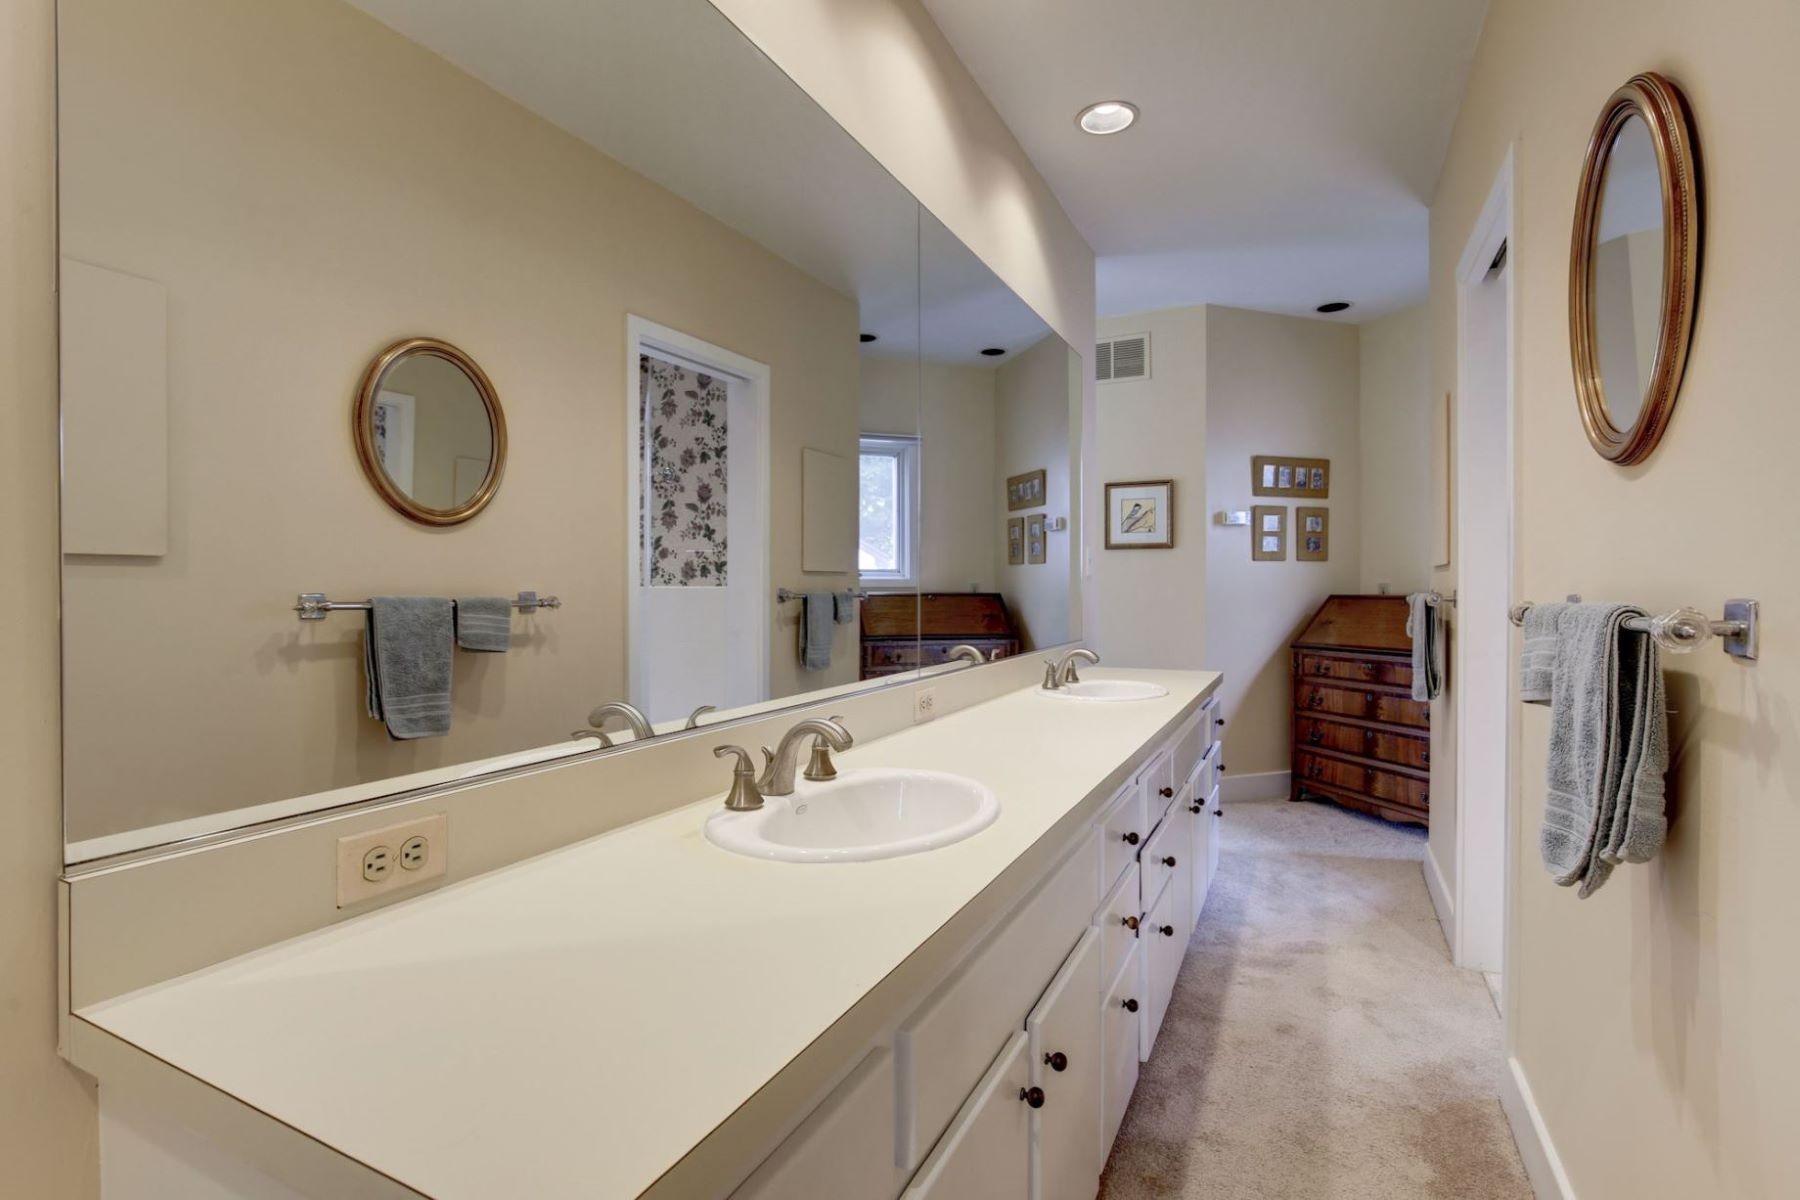 Additional photo for property listing at 668 Broadwater Way 668 Broadwater Way Gibson Island, Maryland 21056 United States